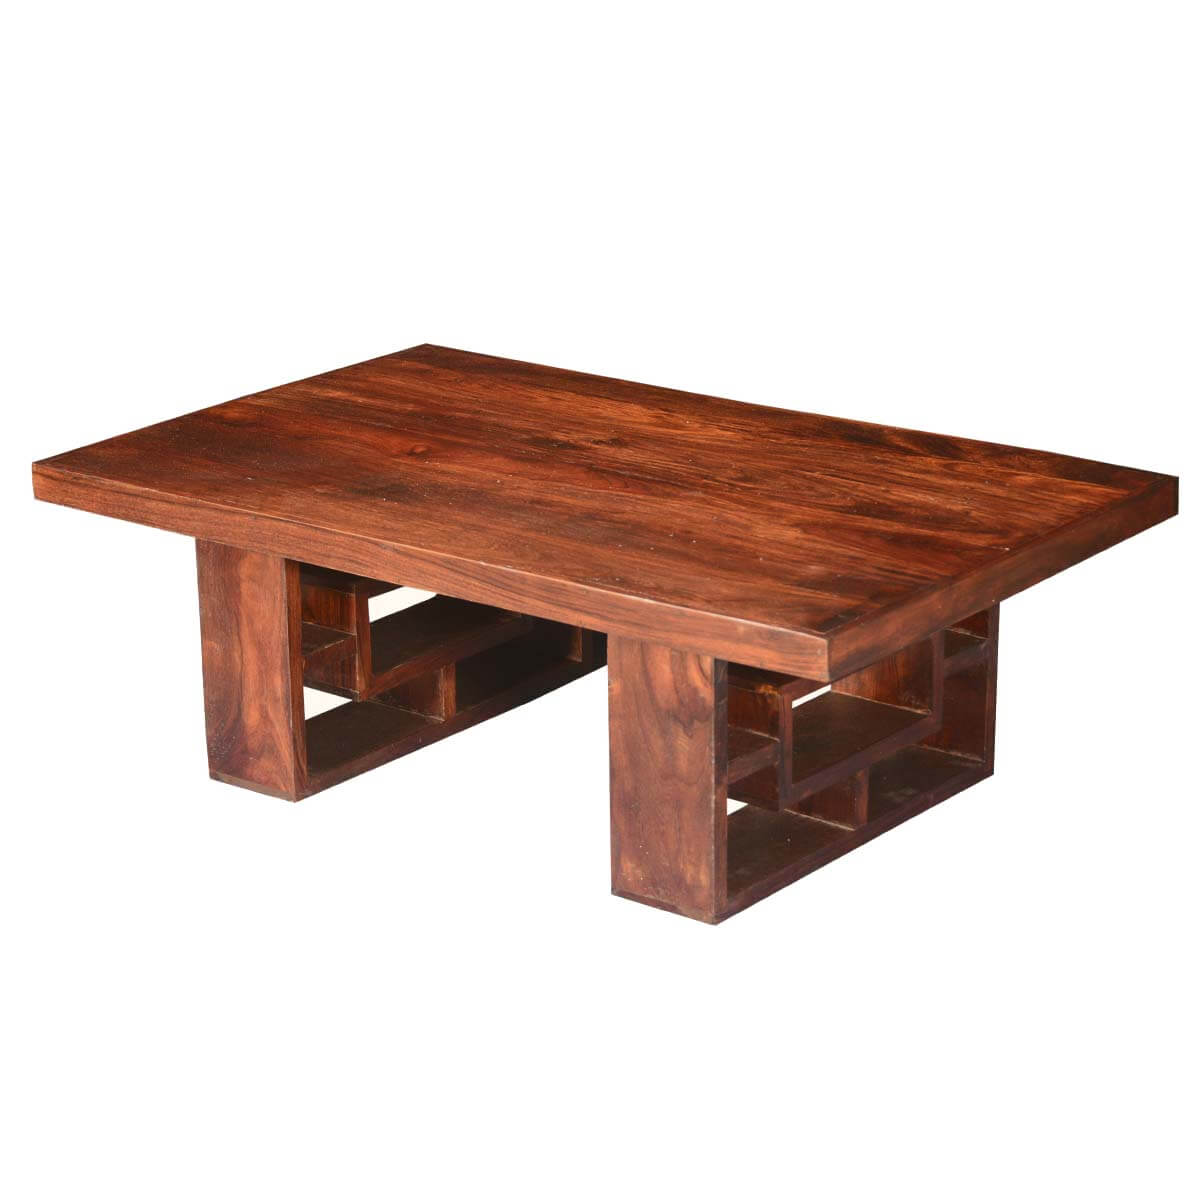 Shadow Box Acacia Wood Double Pedestal Coffee Table